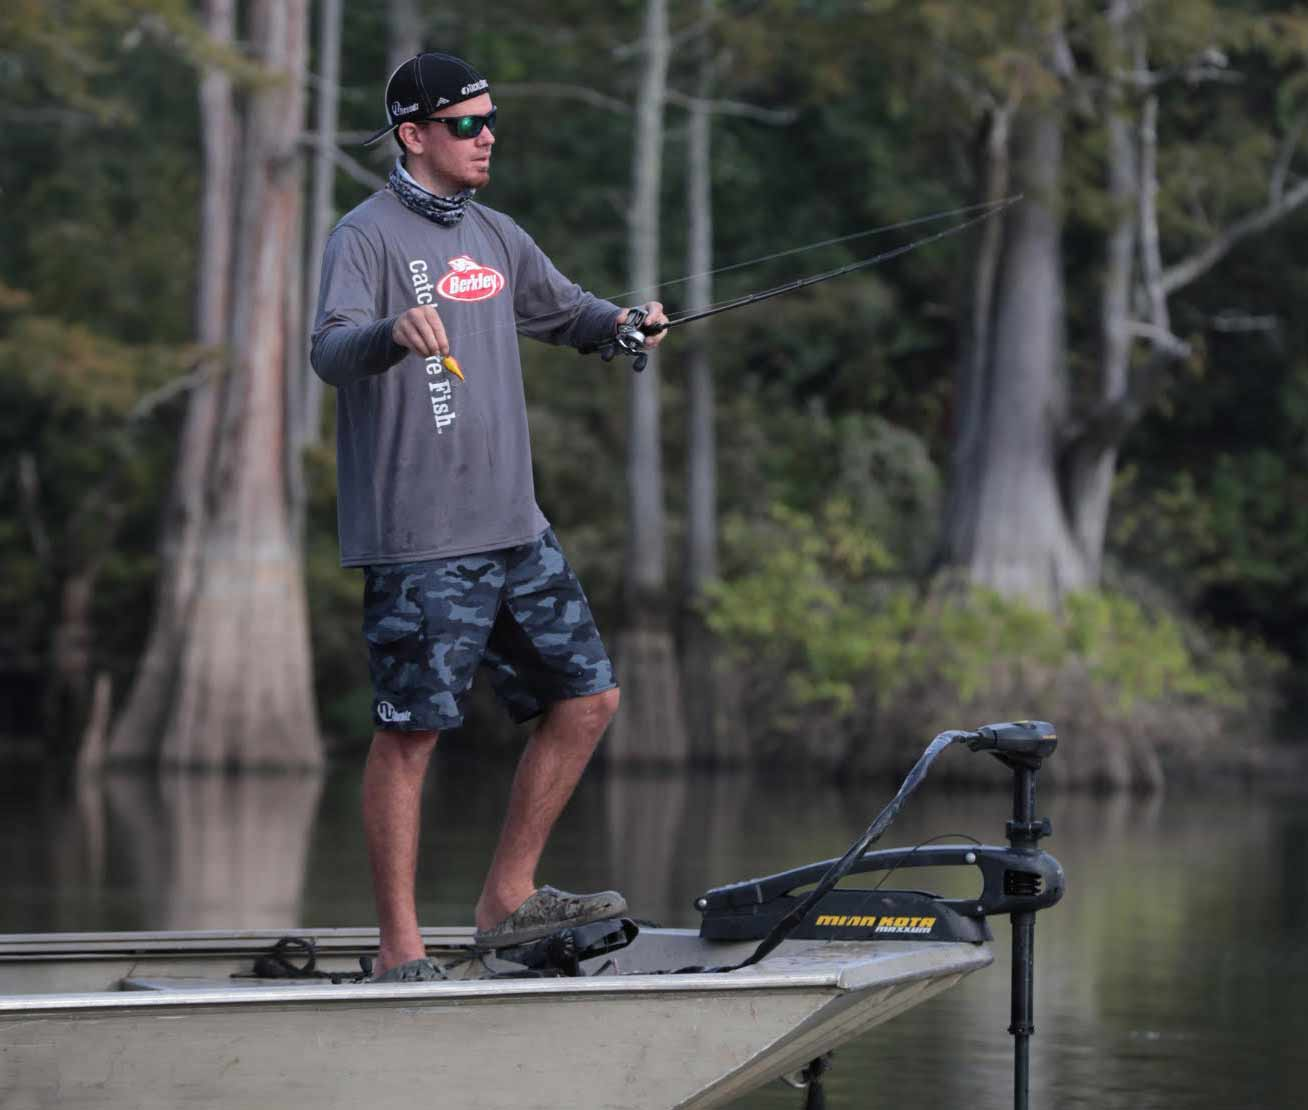 A bass angler stands at the front of a fishing boat getting ready to cast a line.